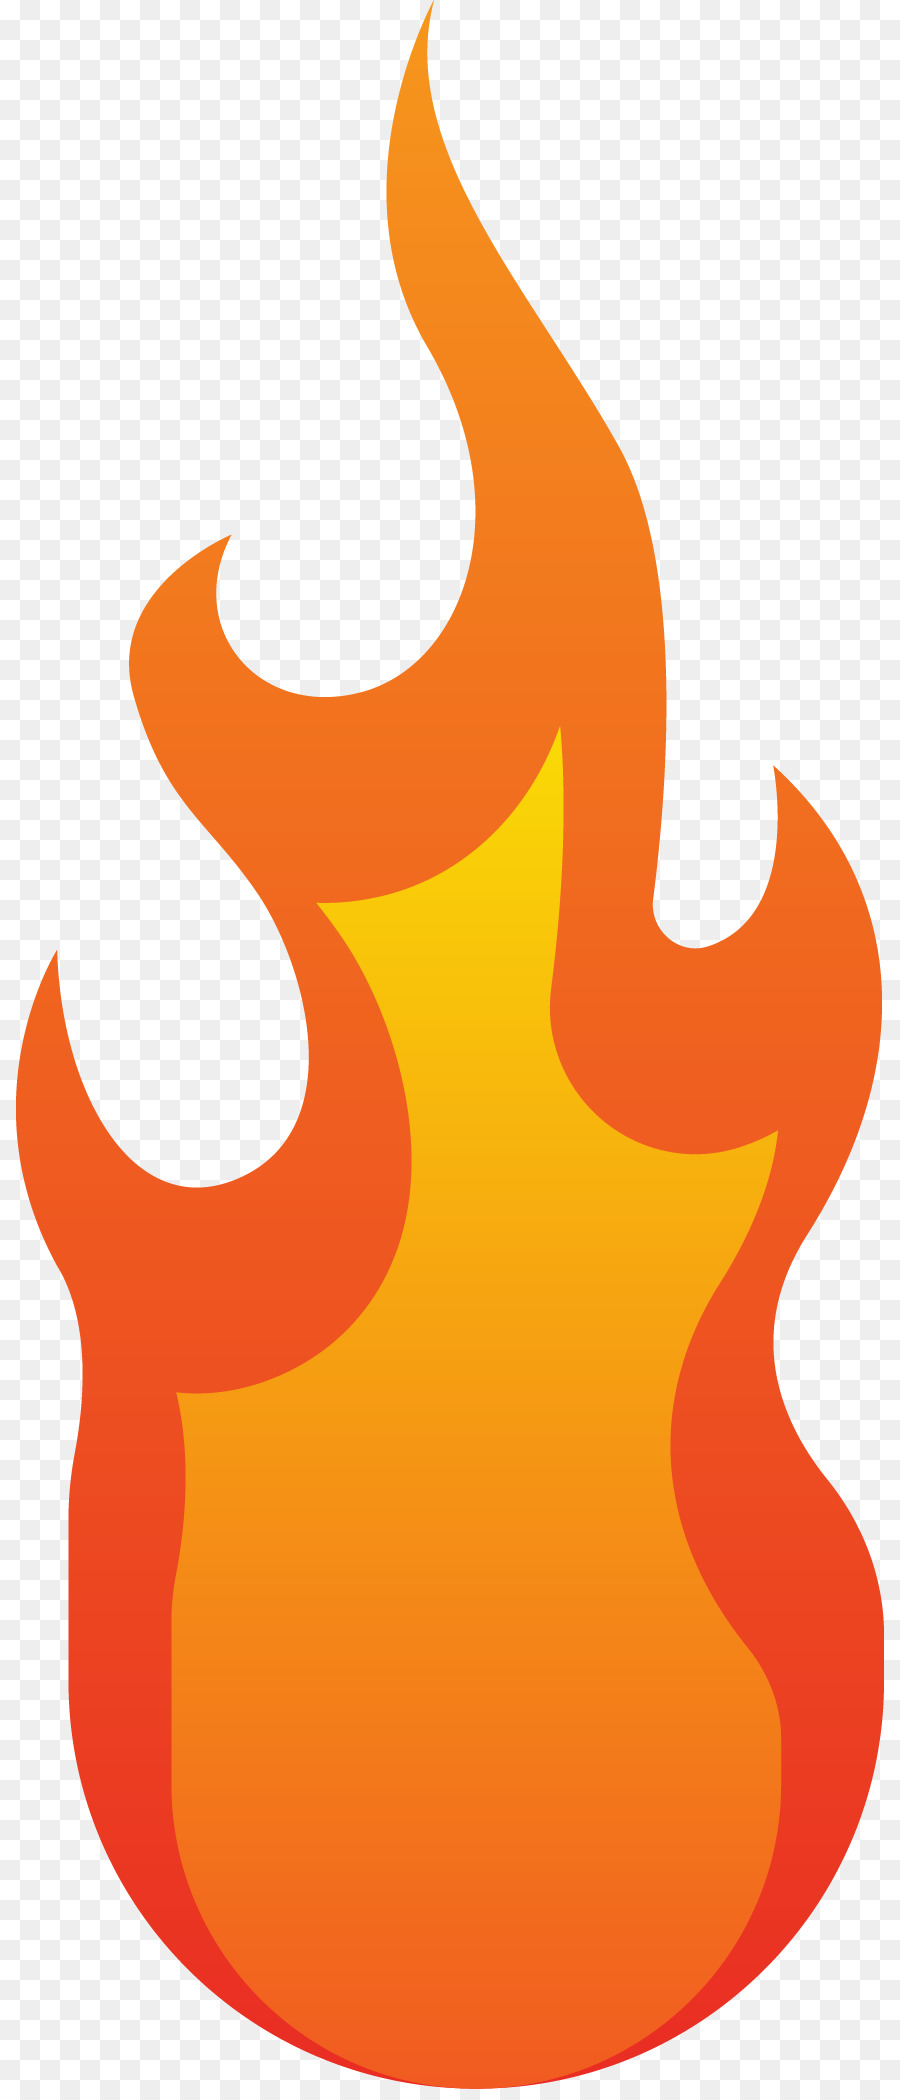 fire flame combustion cartoon fire png download 868 2089 free rh kisspng com cartoon flames images cartoon flame ring